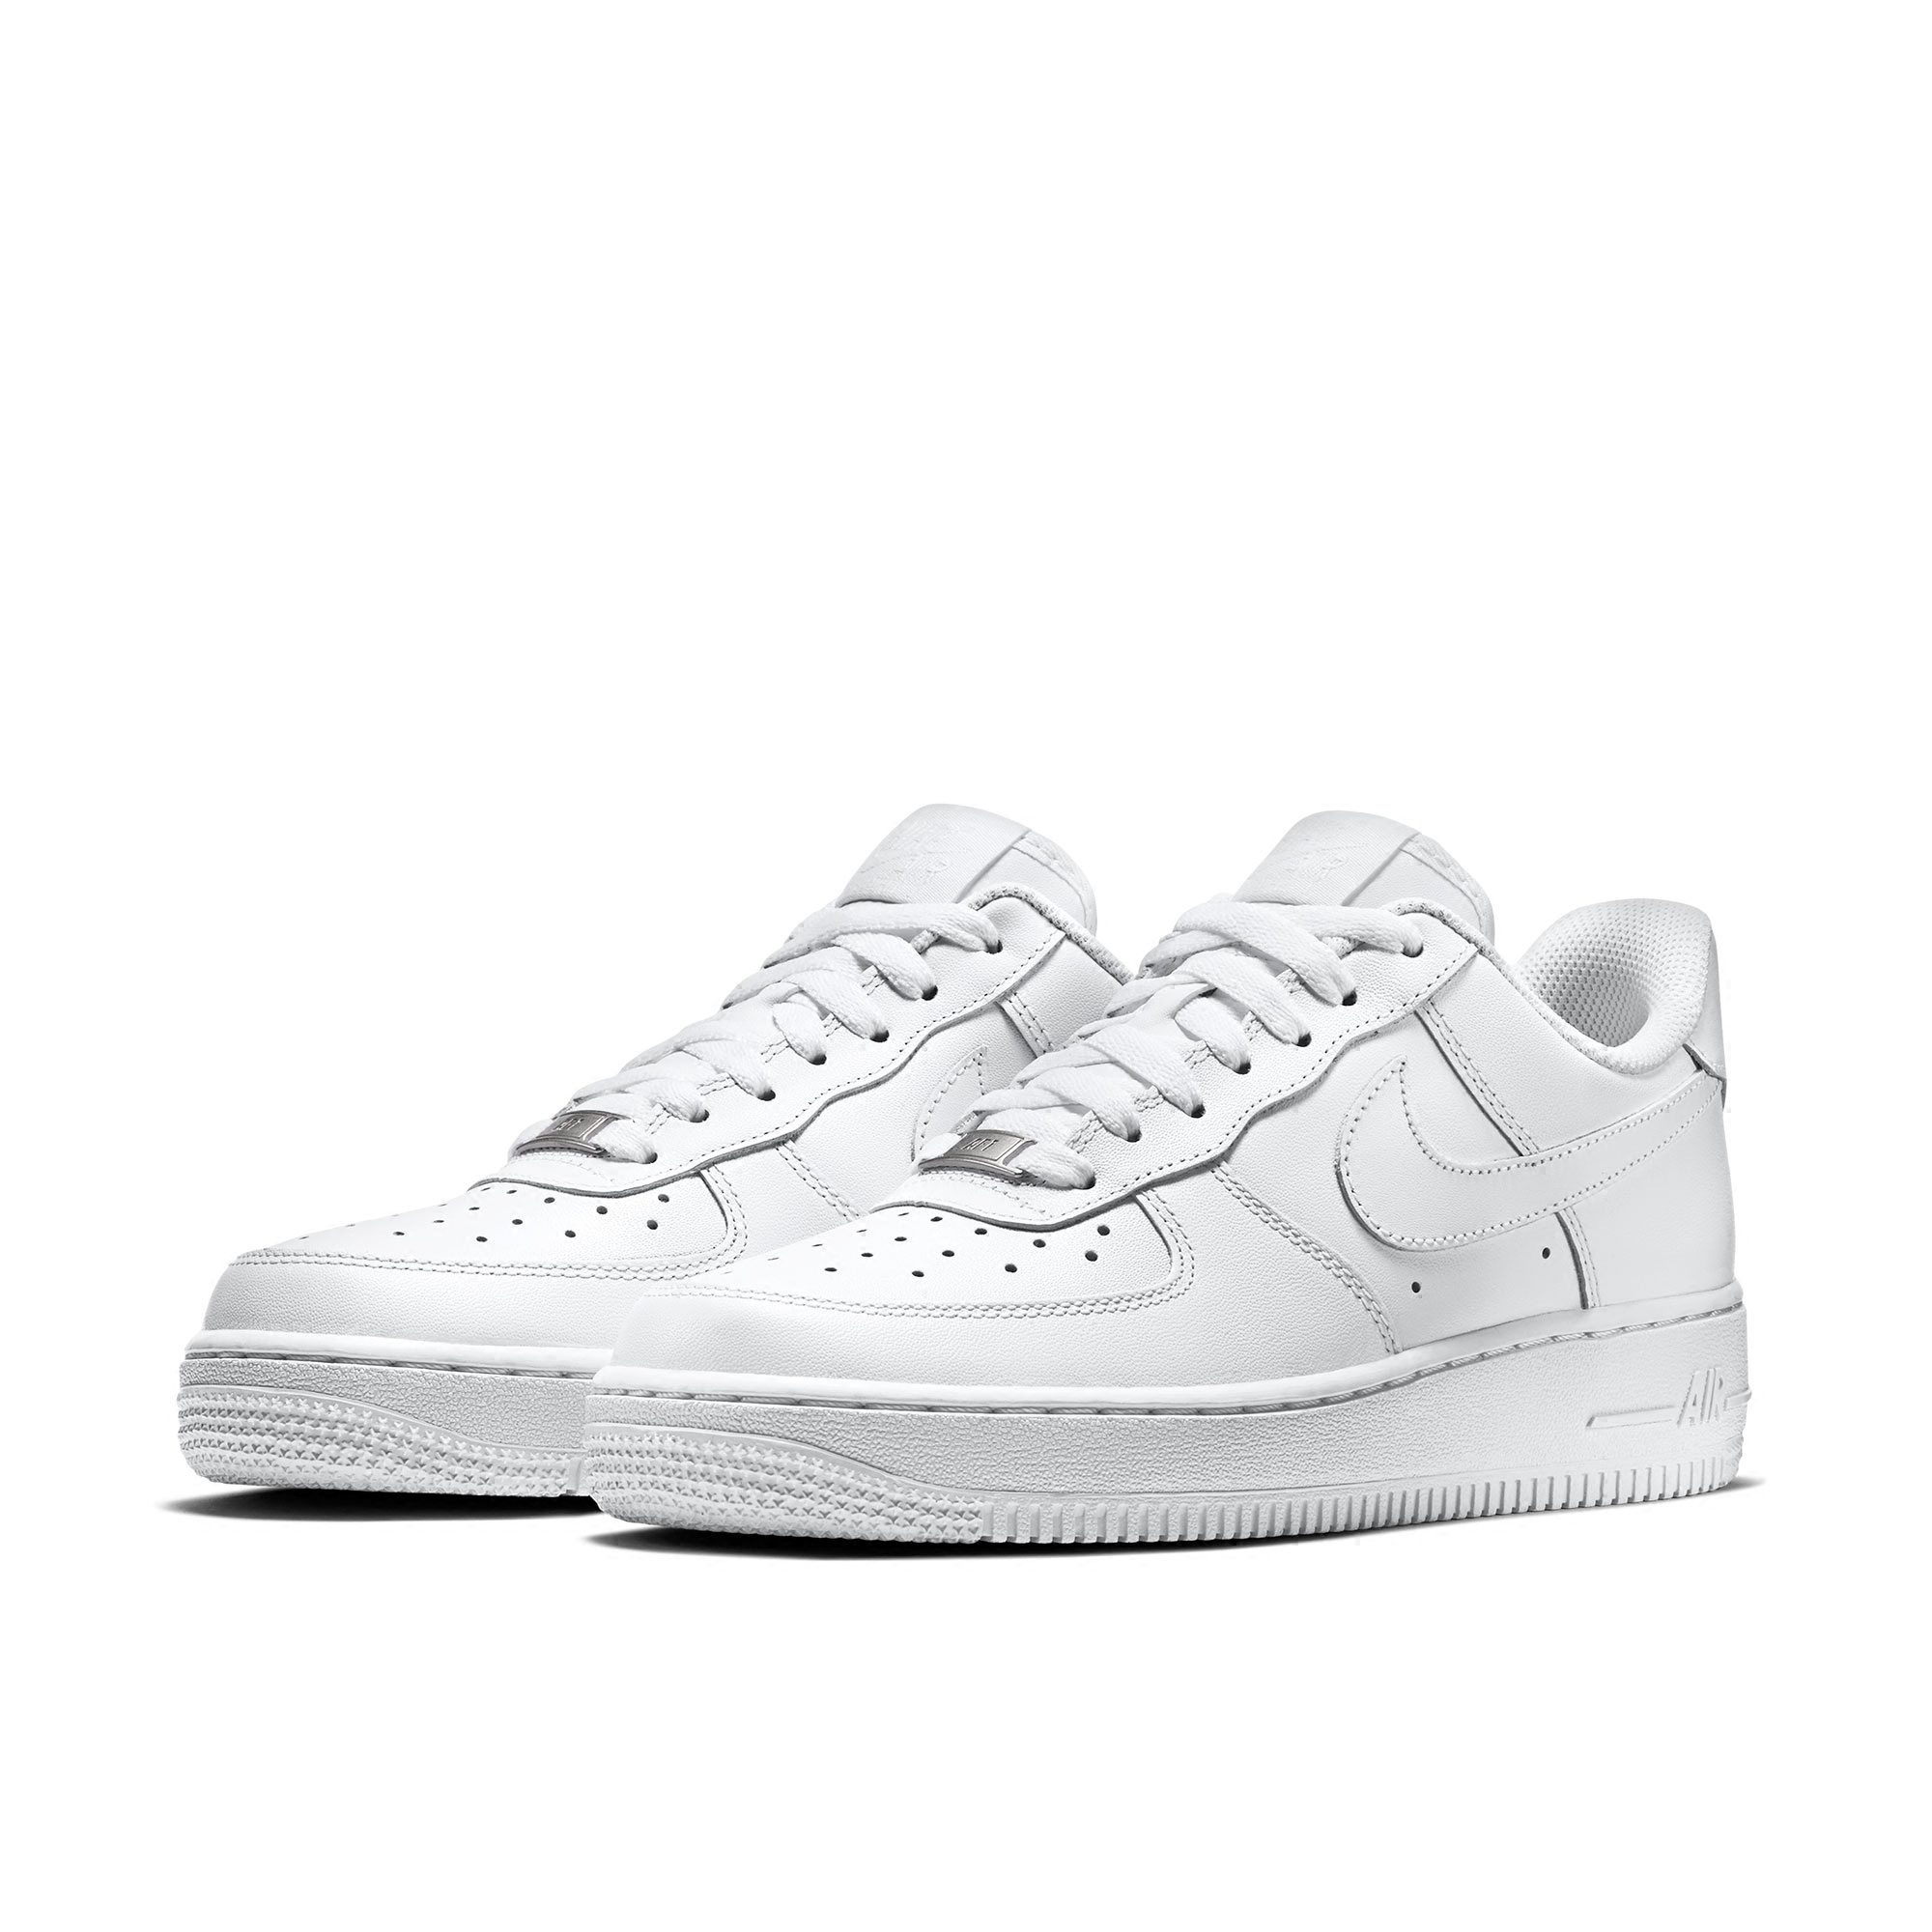 NIKE AIR FORCE 1 39 07 Woman Sneakers Leisure Shoes Skateboarding Shoes 315115 in Skateboarding from Sports amp Entertainment